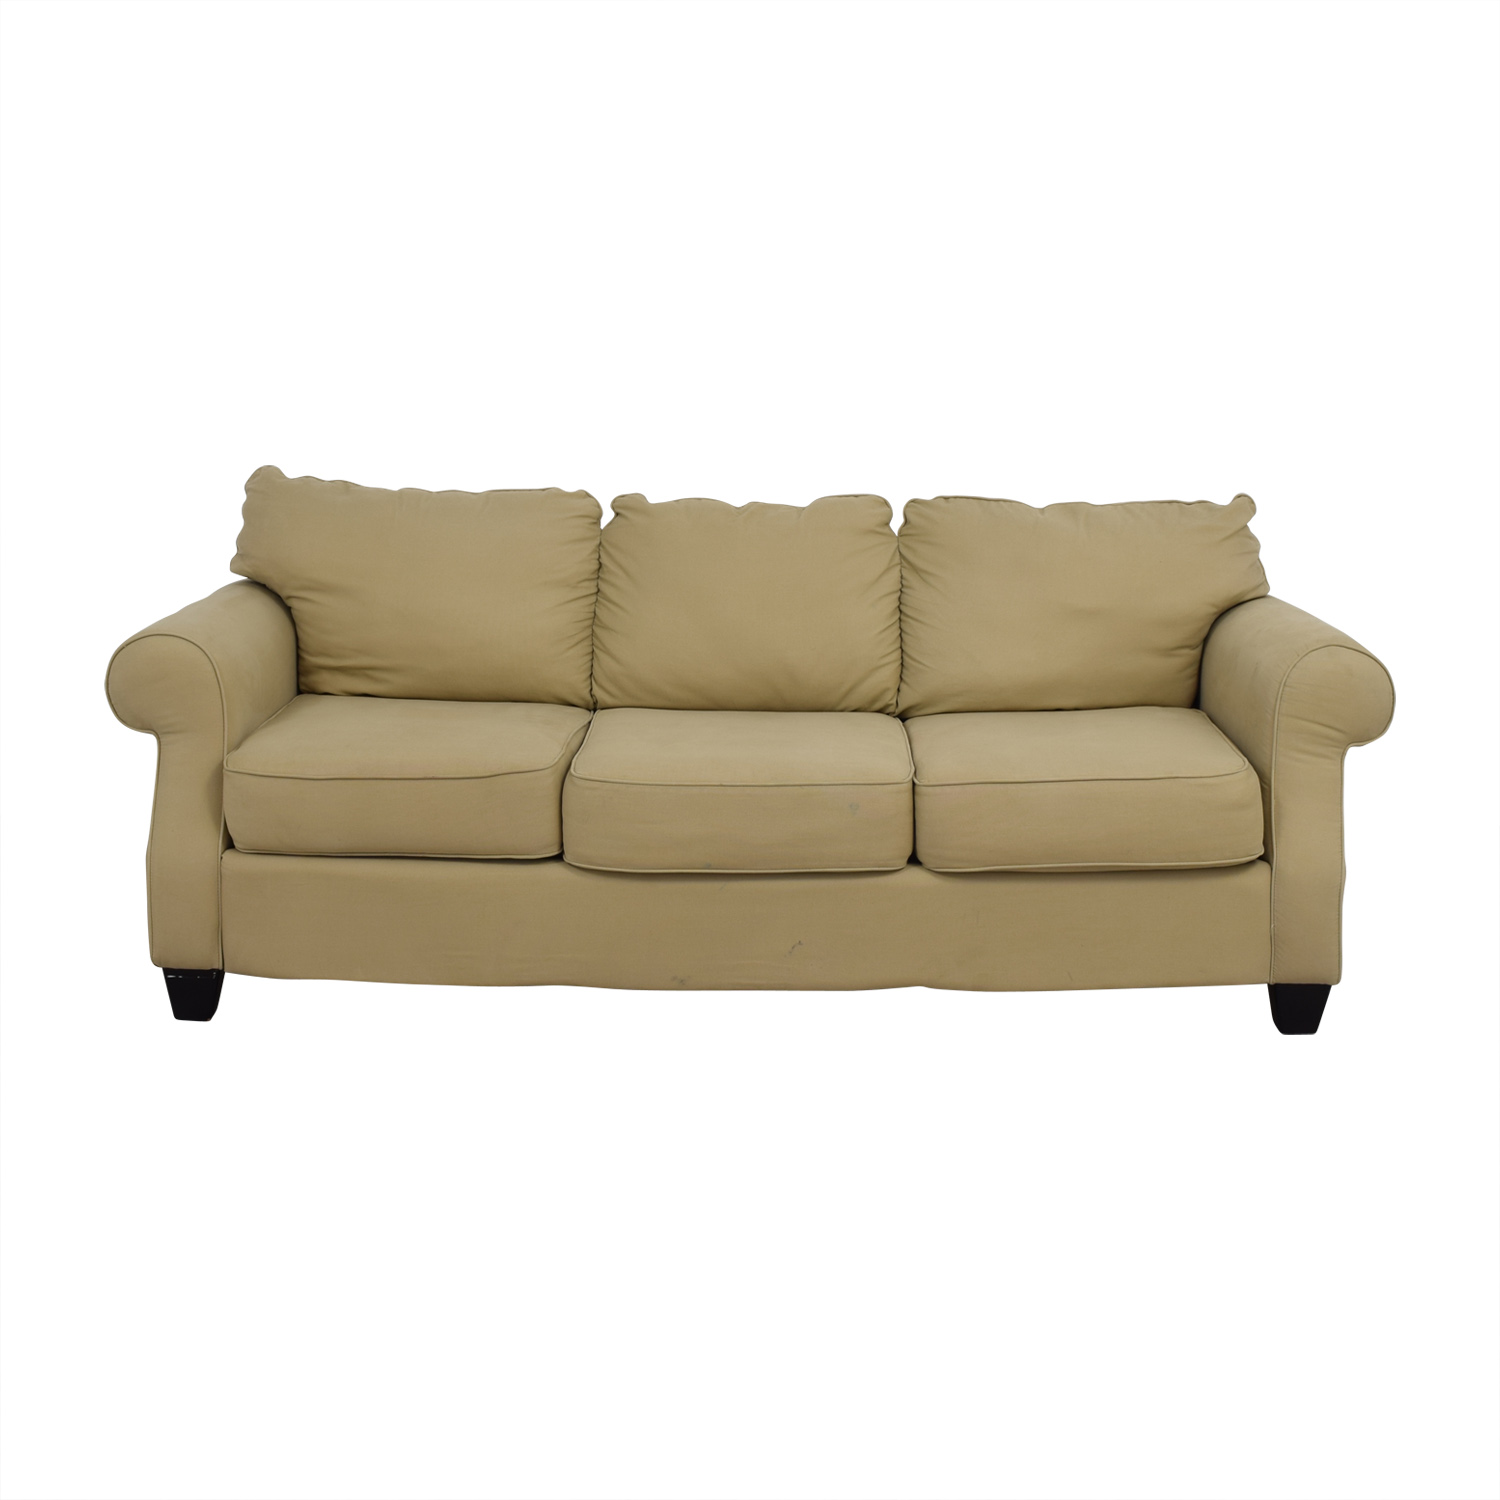 Curved Arm Sofa Bennett Roll Arm Loveseat Ethan Allen Thesofa